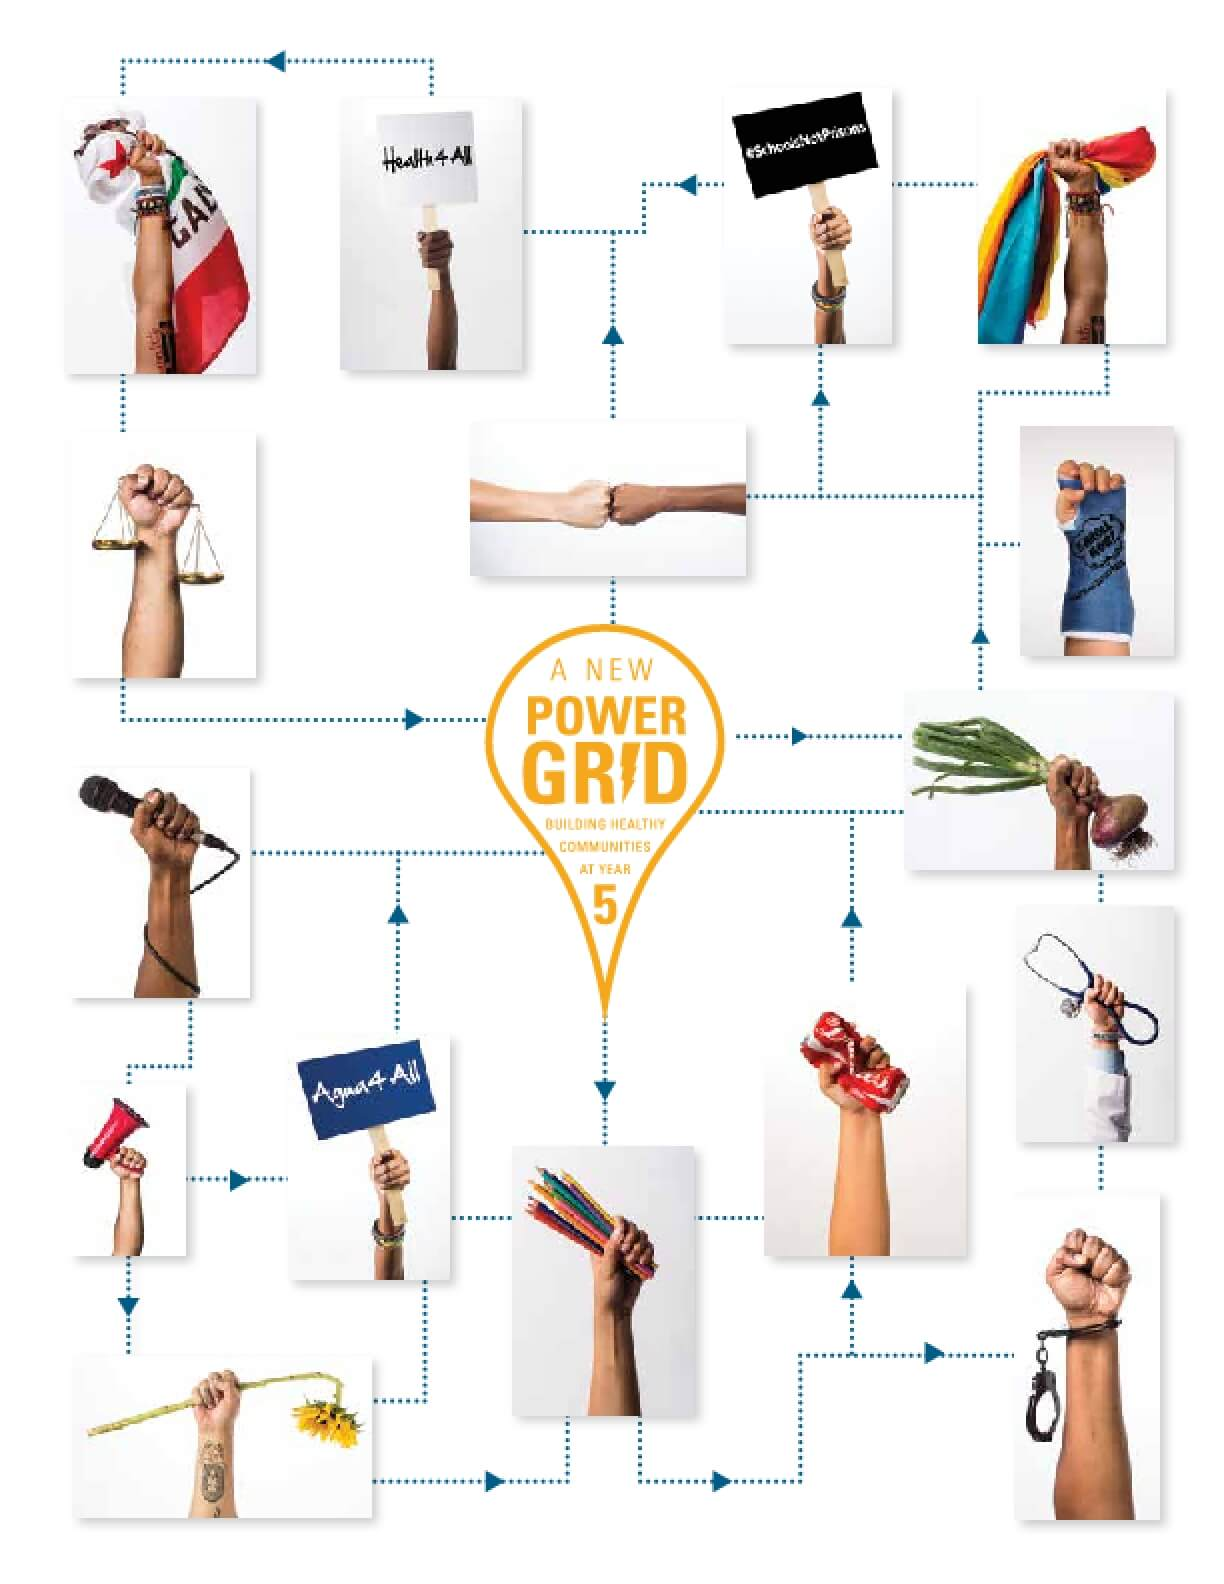 A New Power Grid: Building Health Communities at Year 5